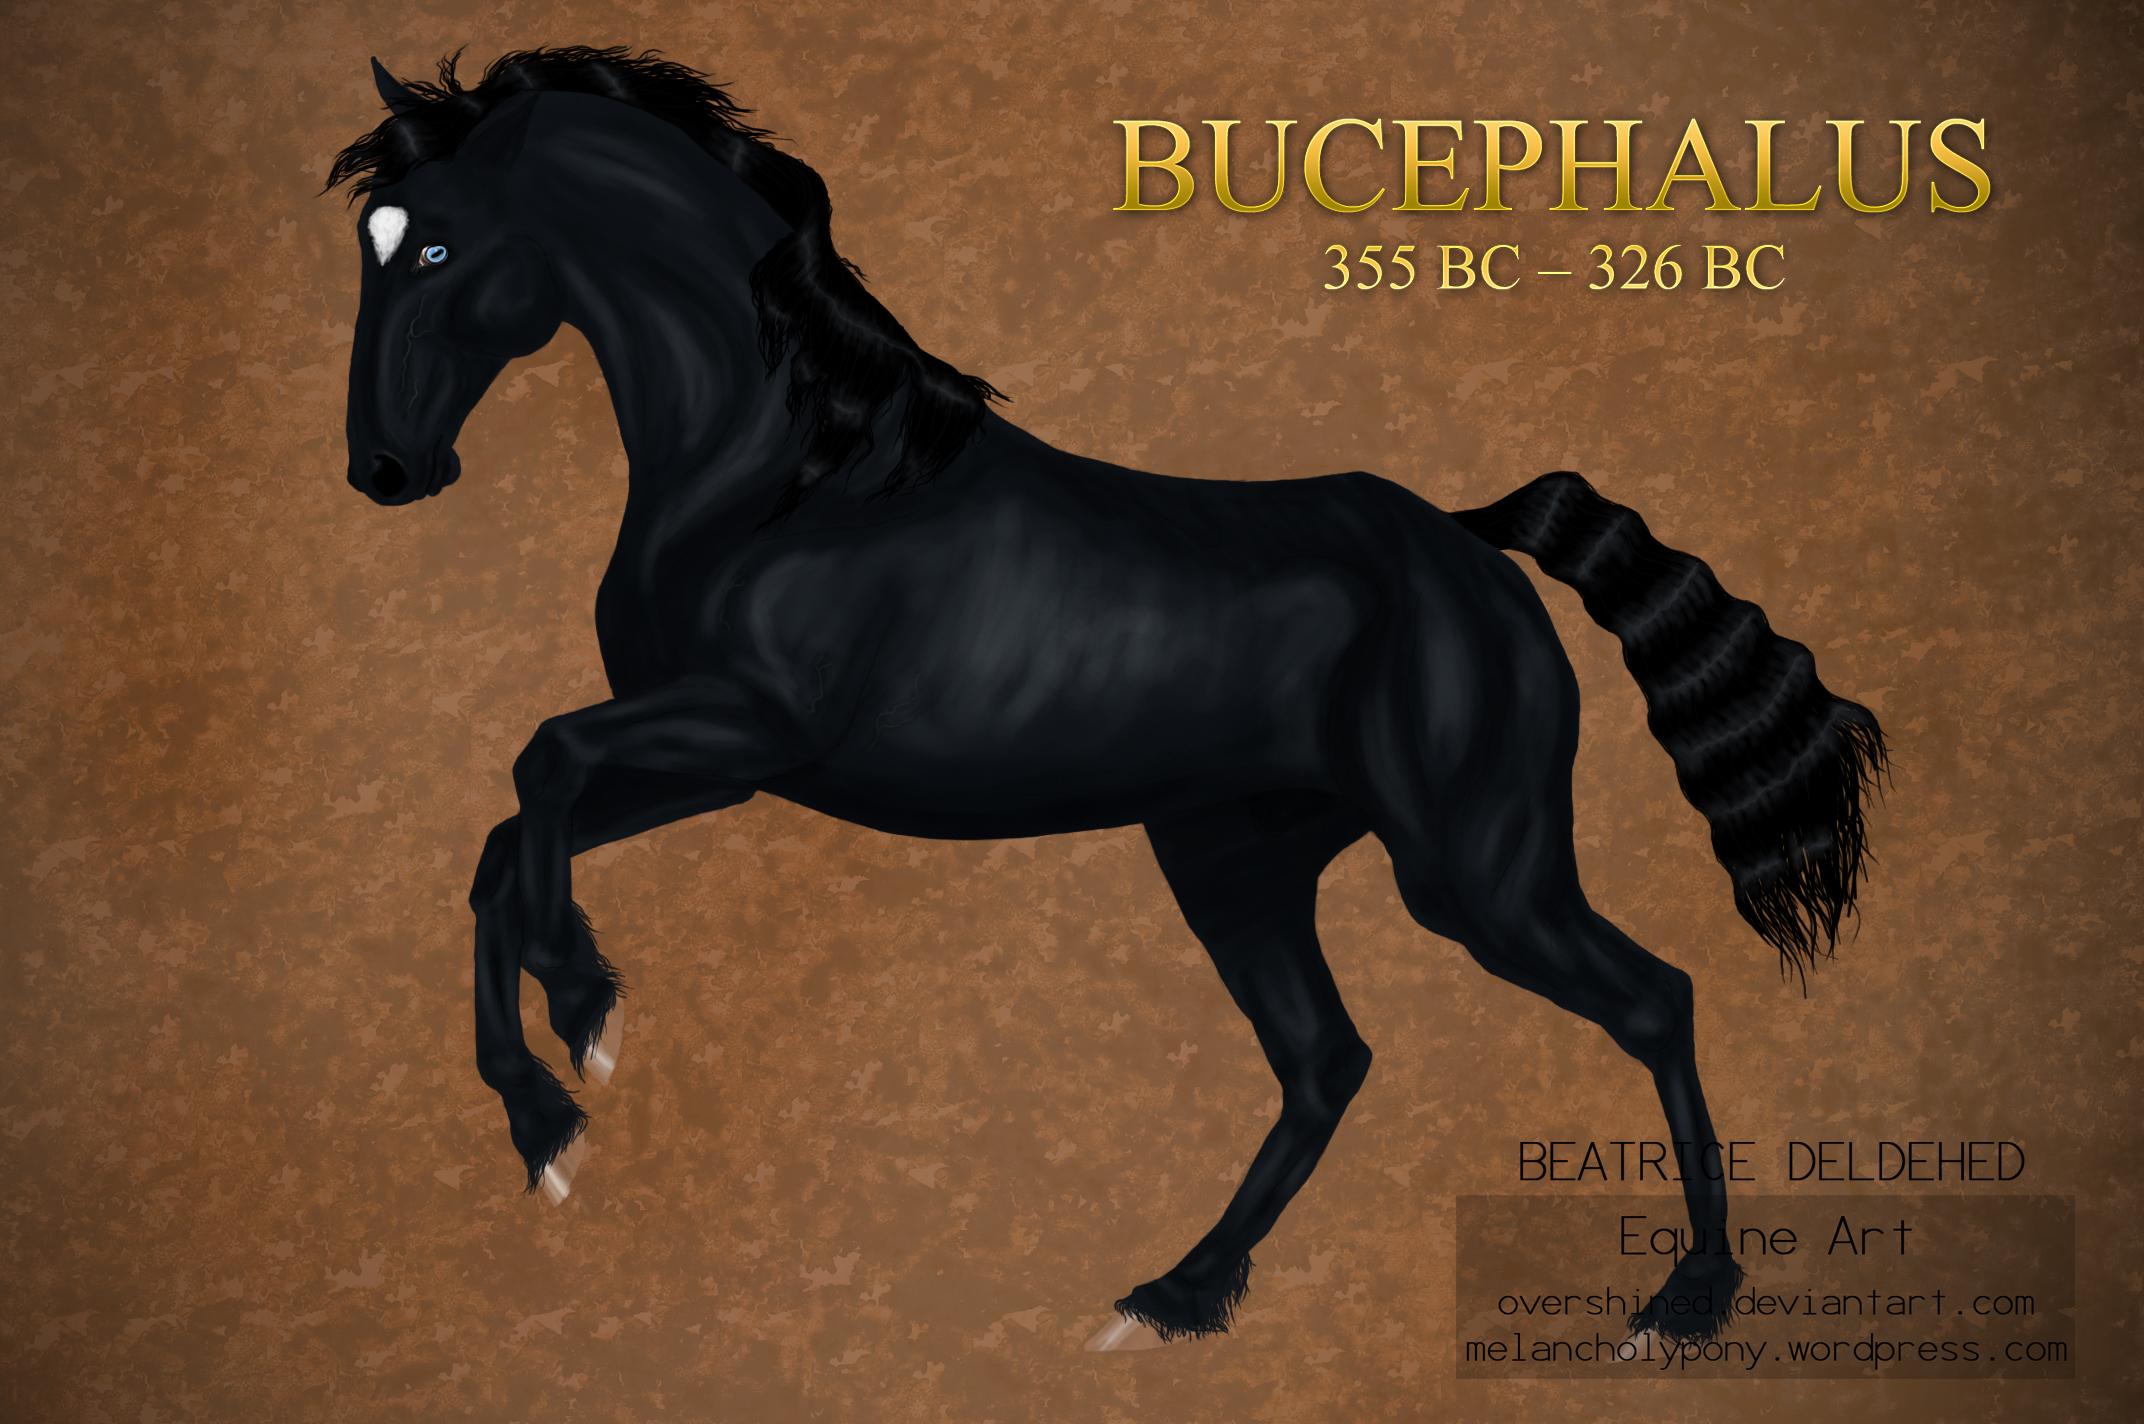 Bucephalus the Great by overshined on DeviantArt